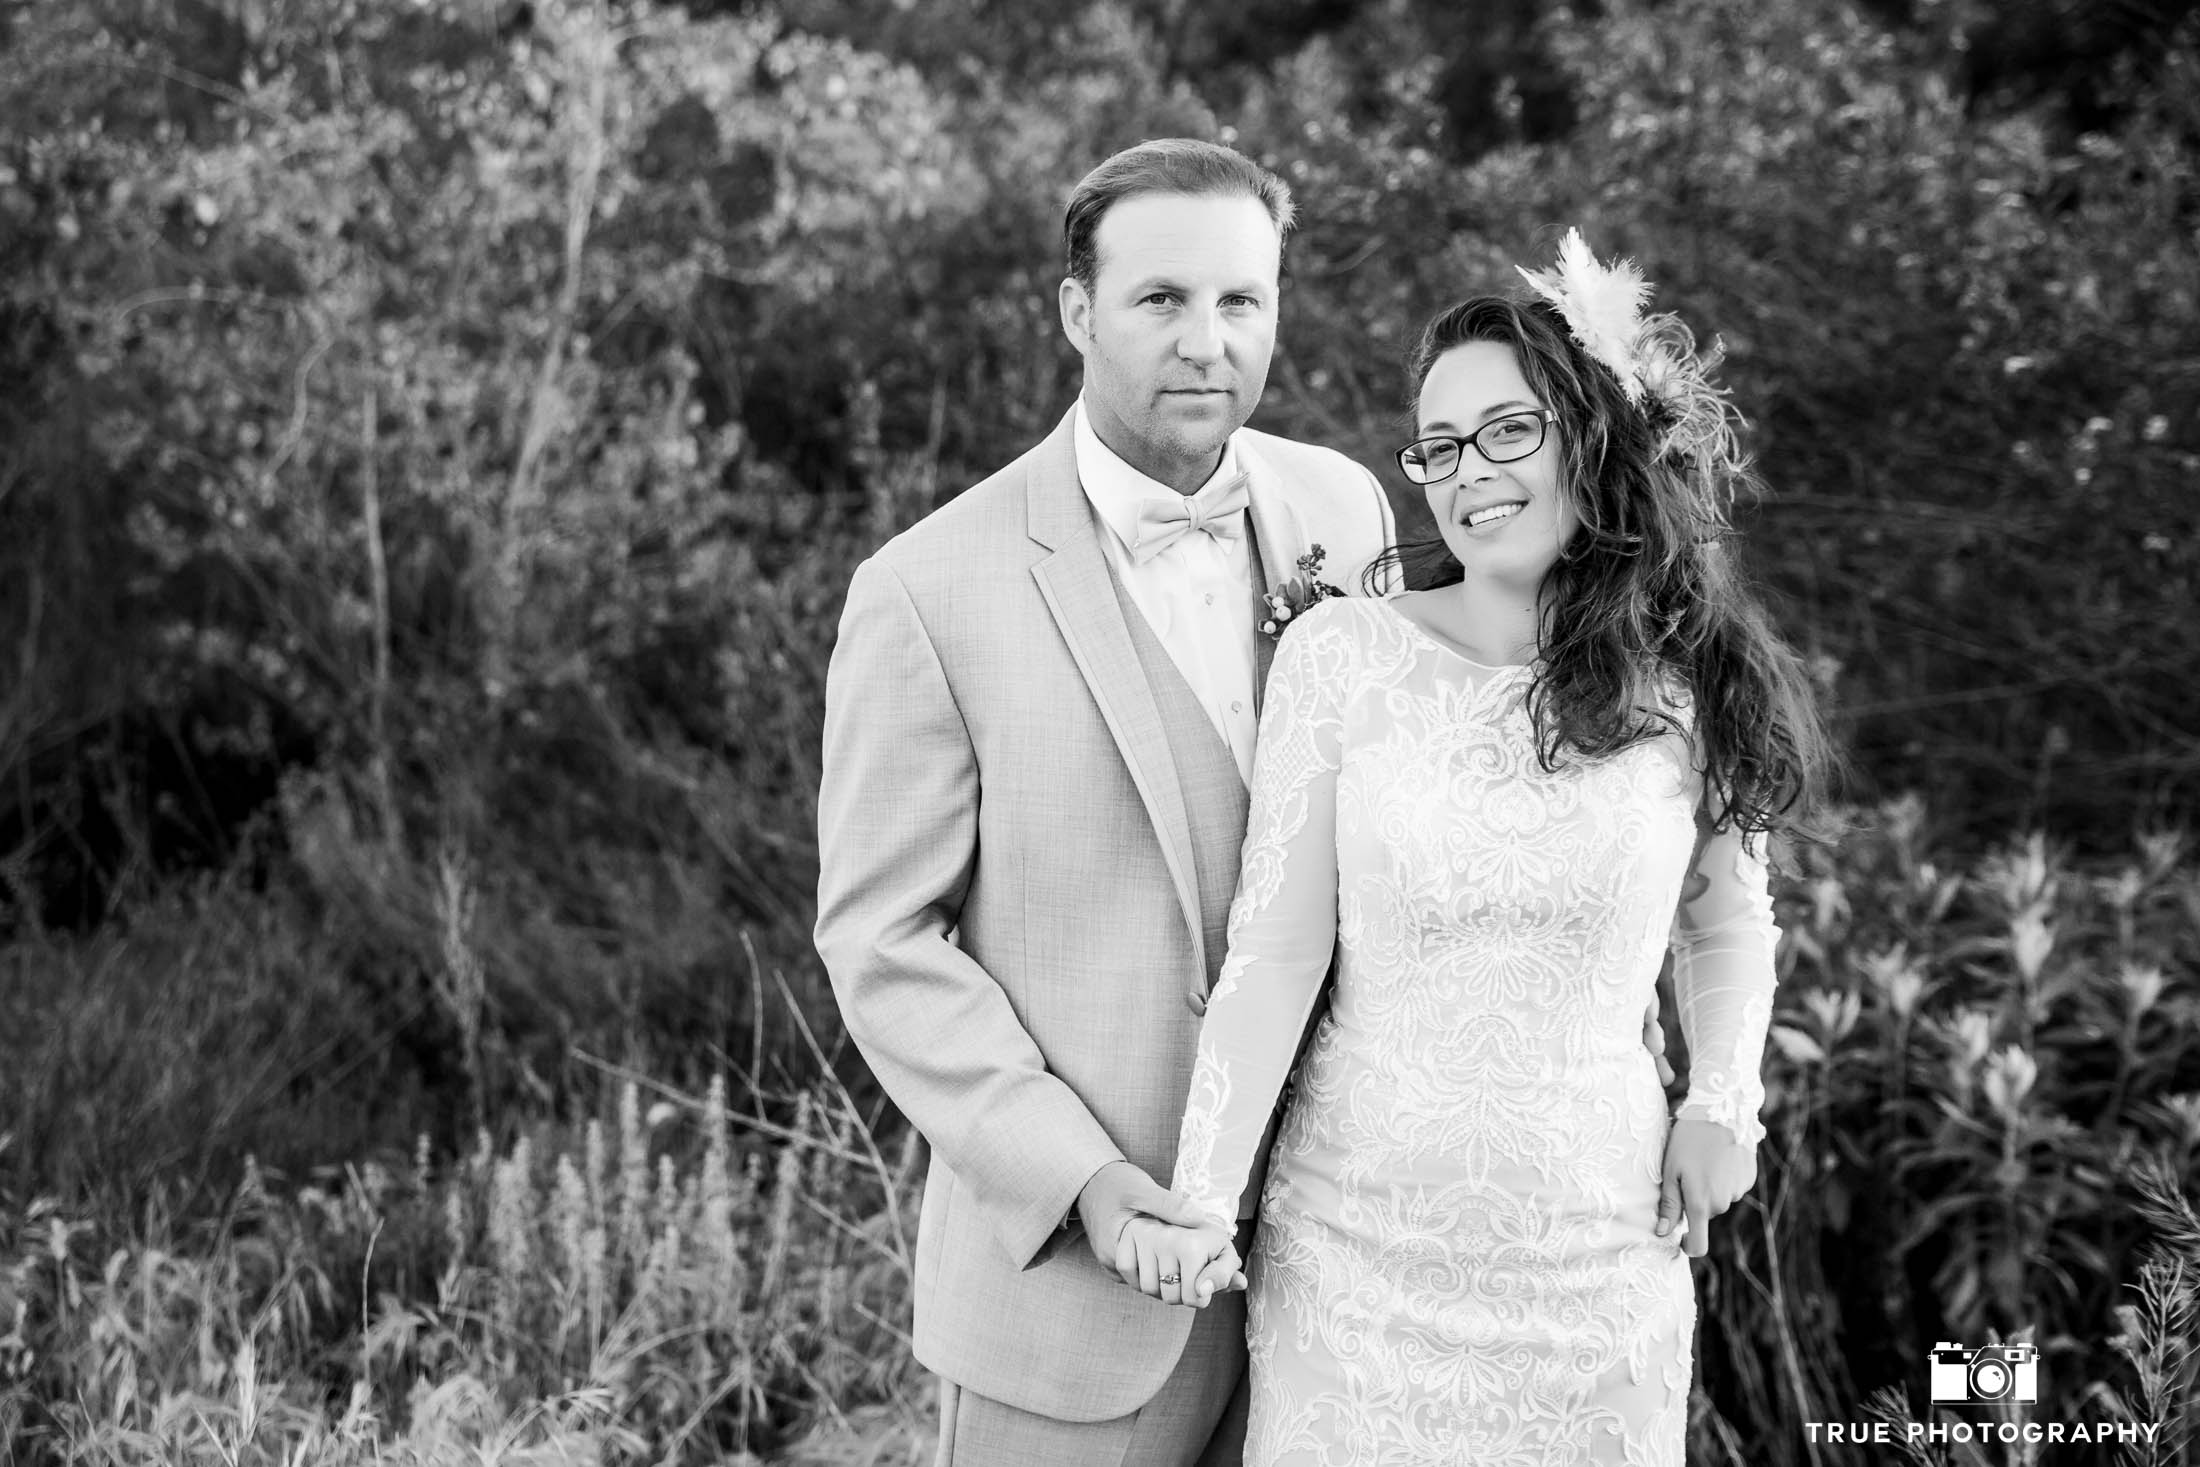 Black and White photo of Bride and Groom standing in grassy field on wedding day